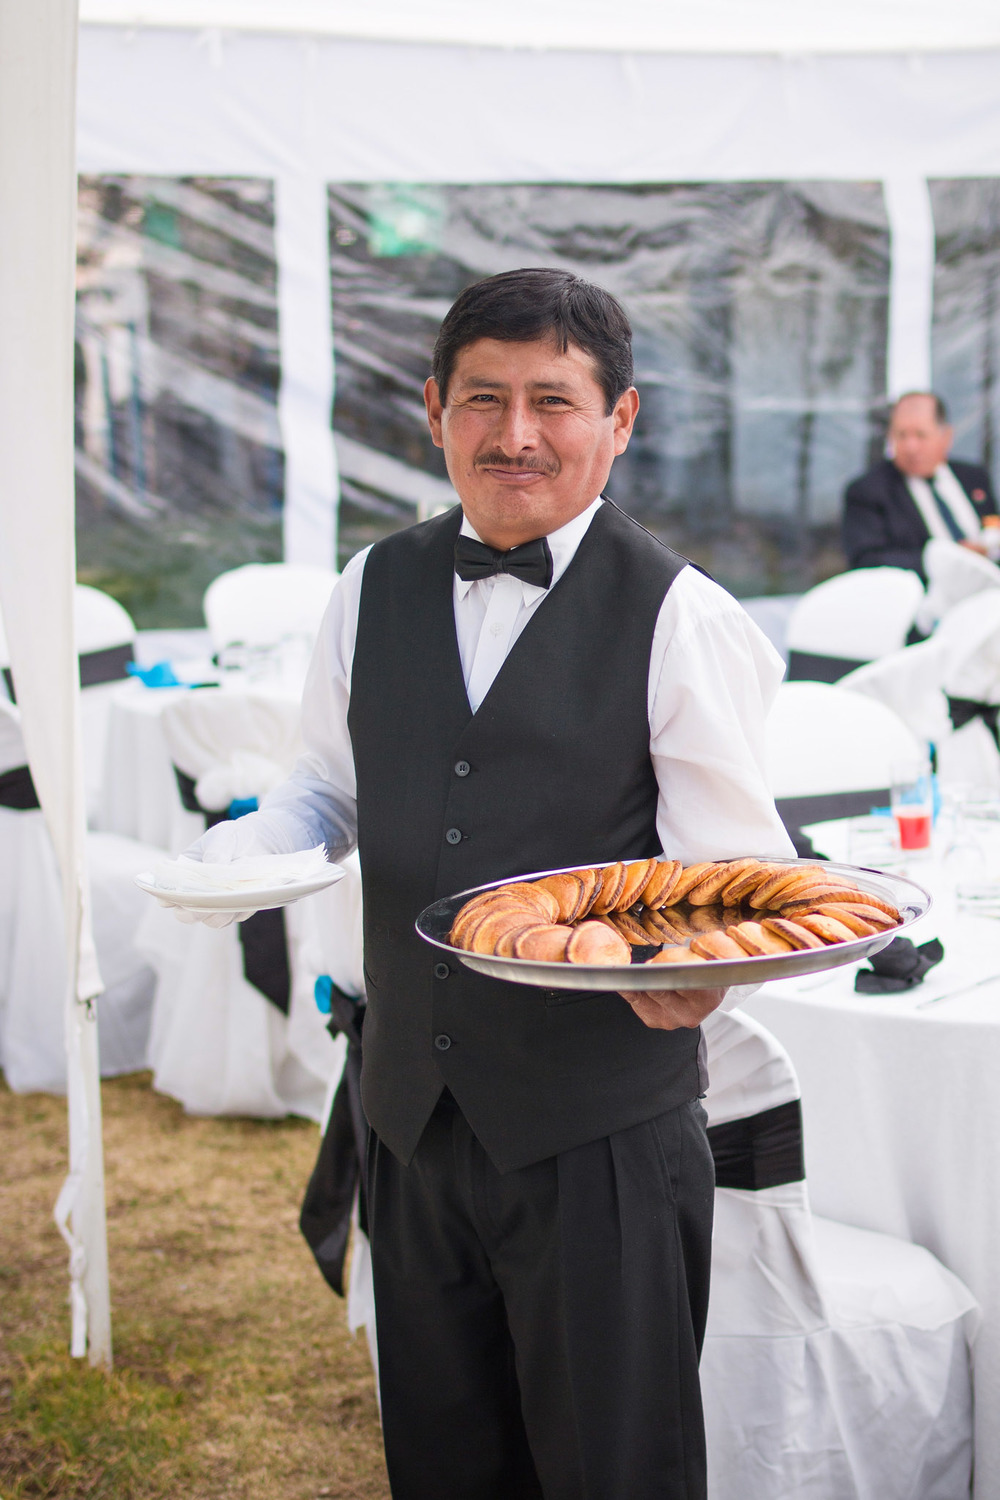 saltenas-bolivia-wedding-food